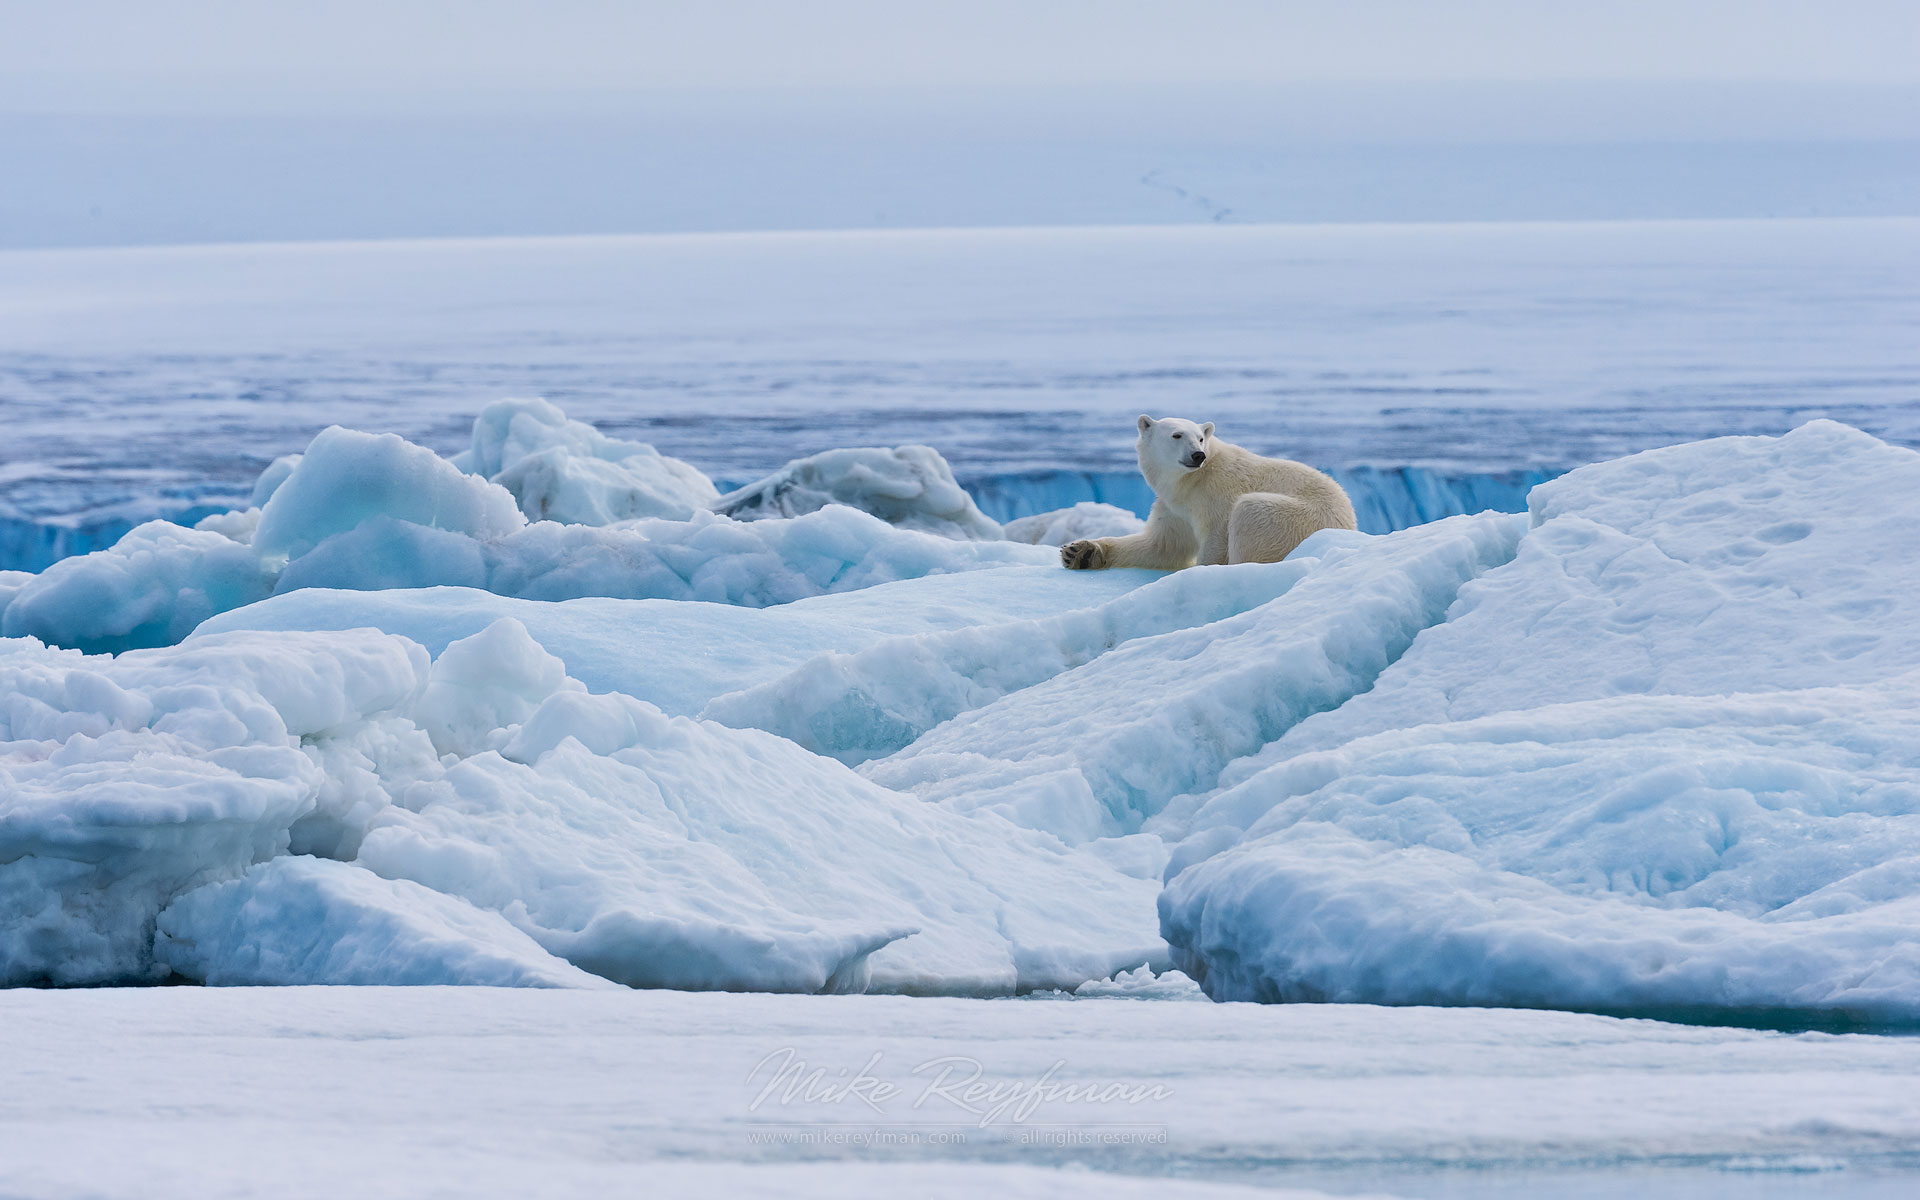 Female polar bear resting on the pack ice along Spitsbergen coast. Svalbard, Norway. - Polar-Bears-Svalbard-Spitsbergen-Norway - Mike Reyfman Photography